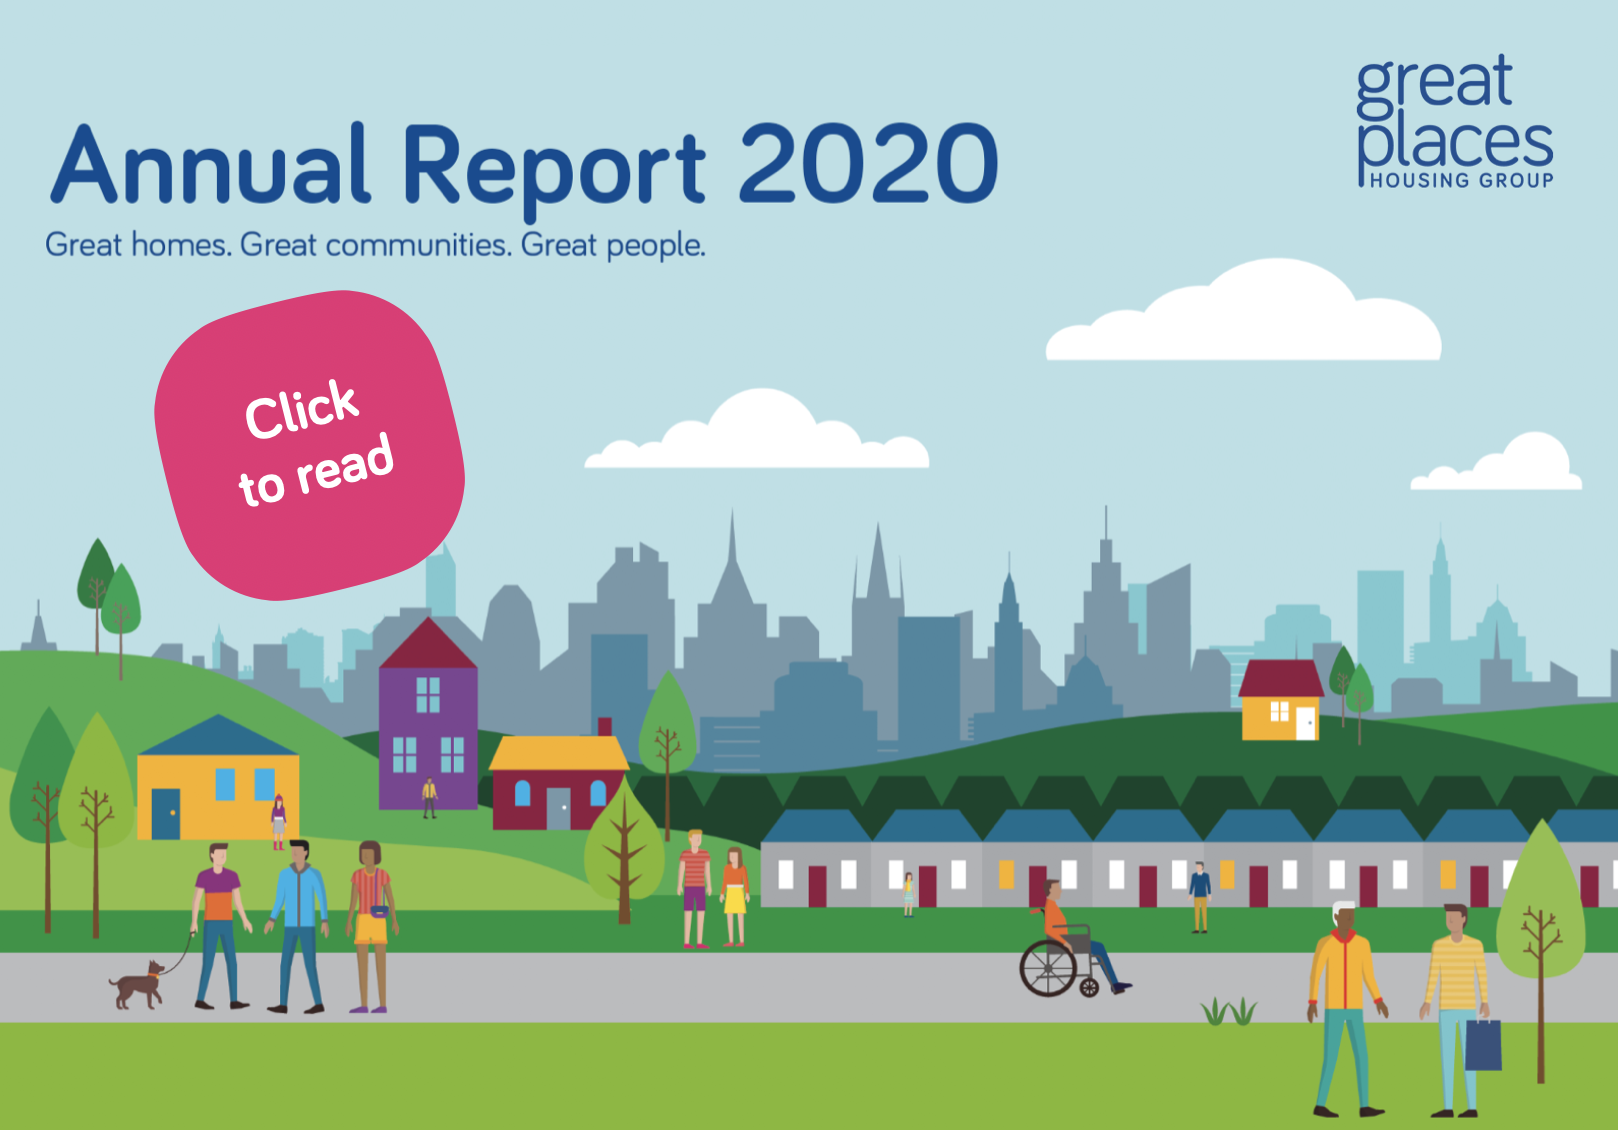 Great Places Annual Report 2020 click here